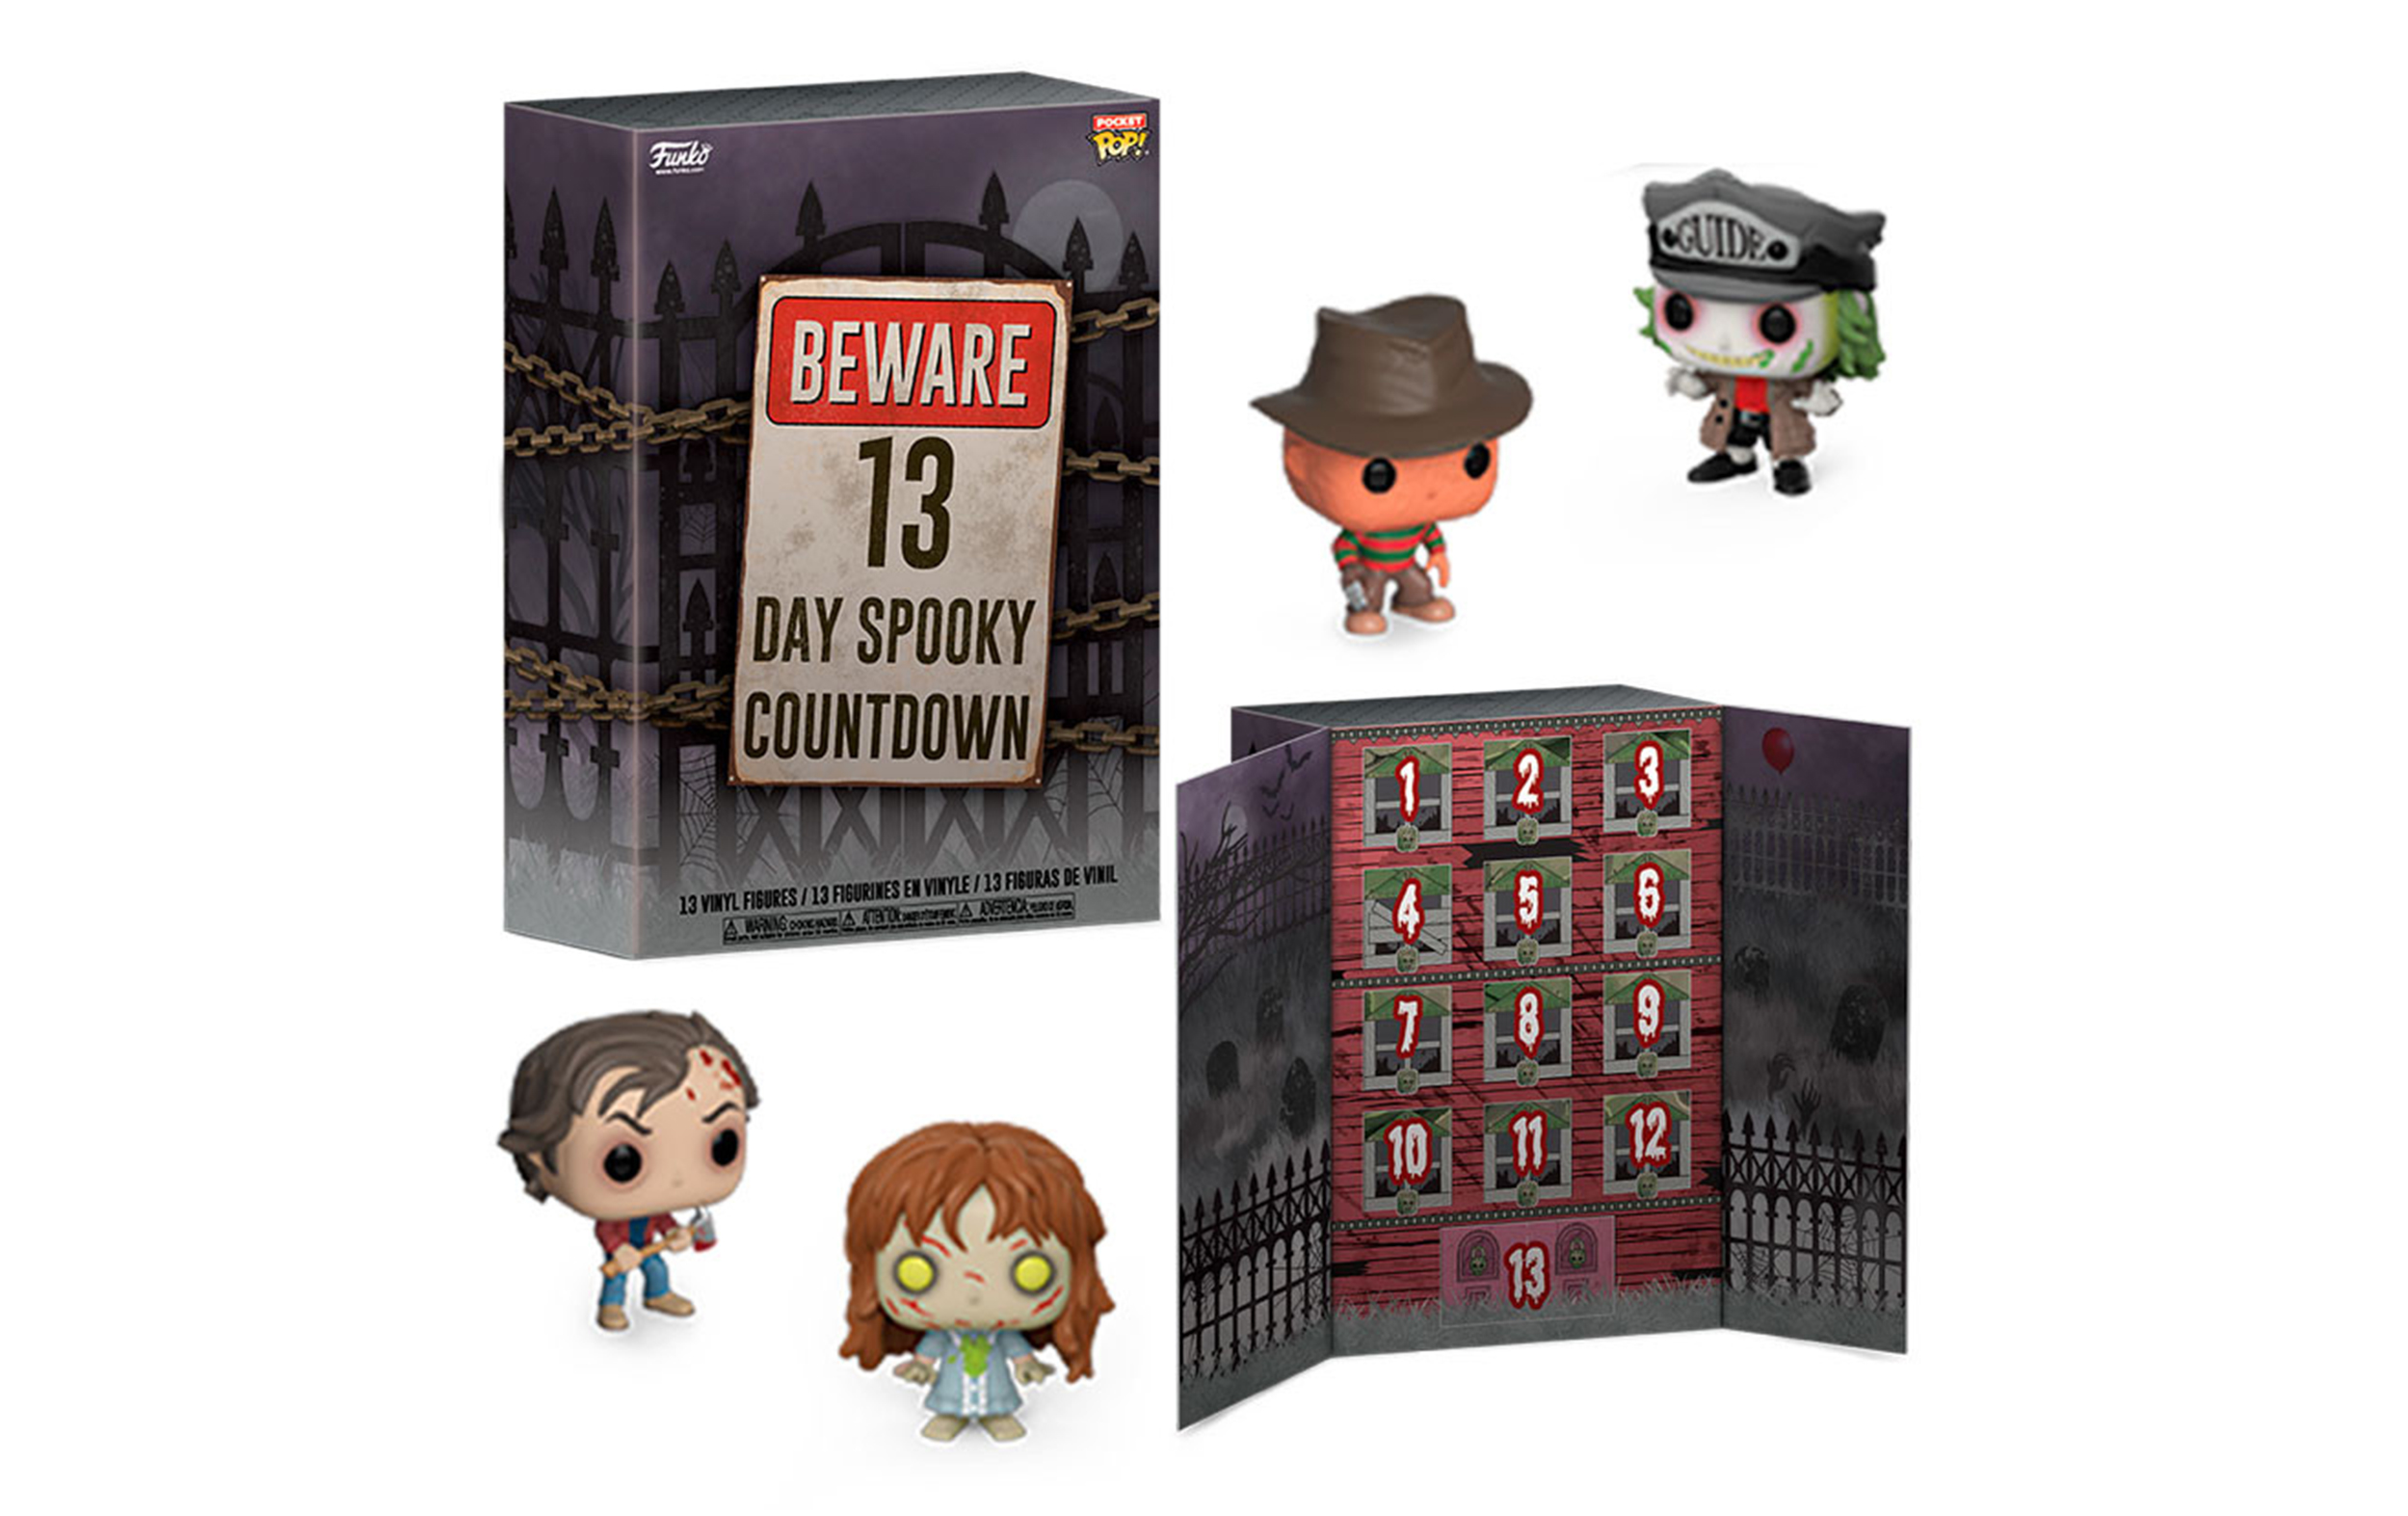 13 Days Spooky Countdown Advent Calendar Funko Pocket POP Vinyl Figure